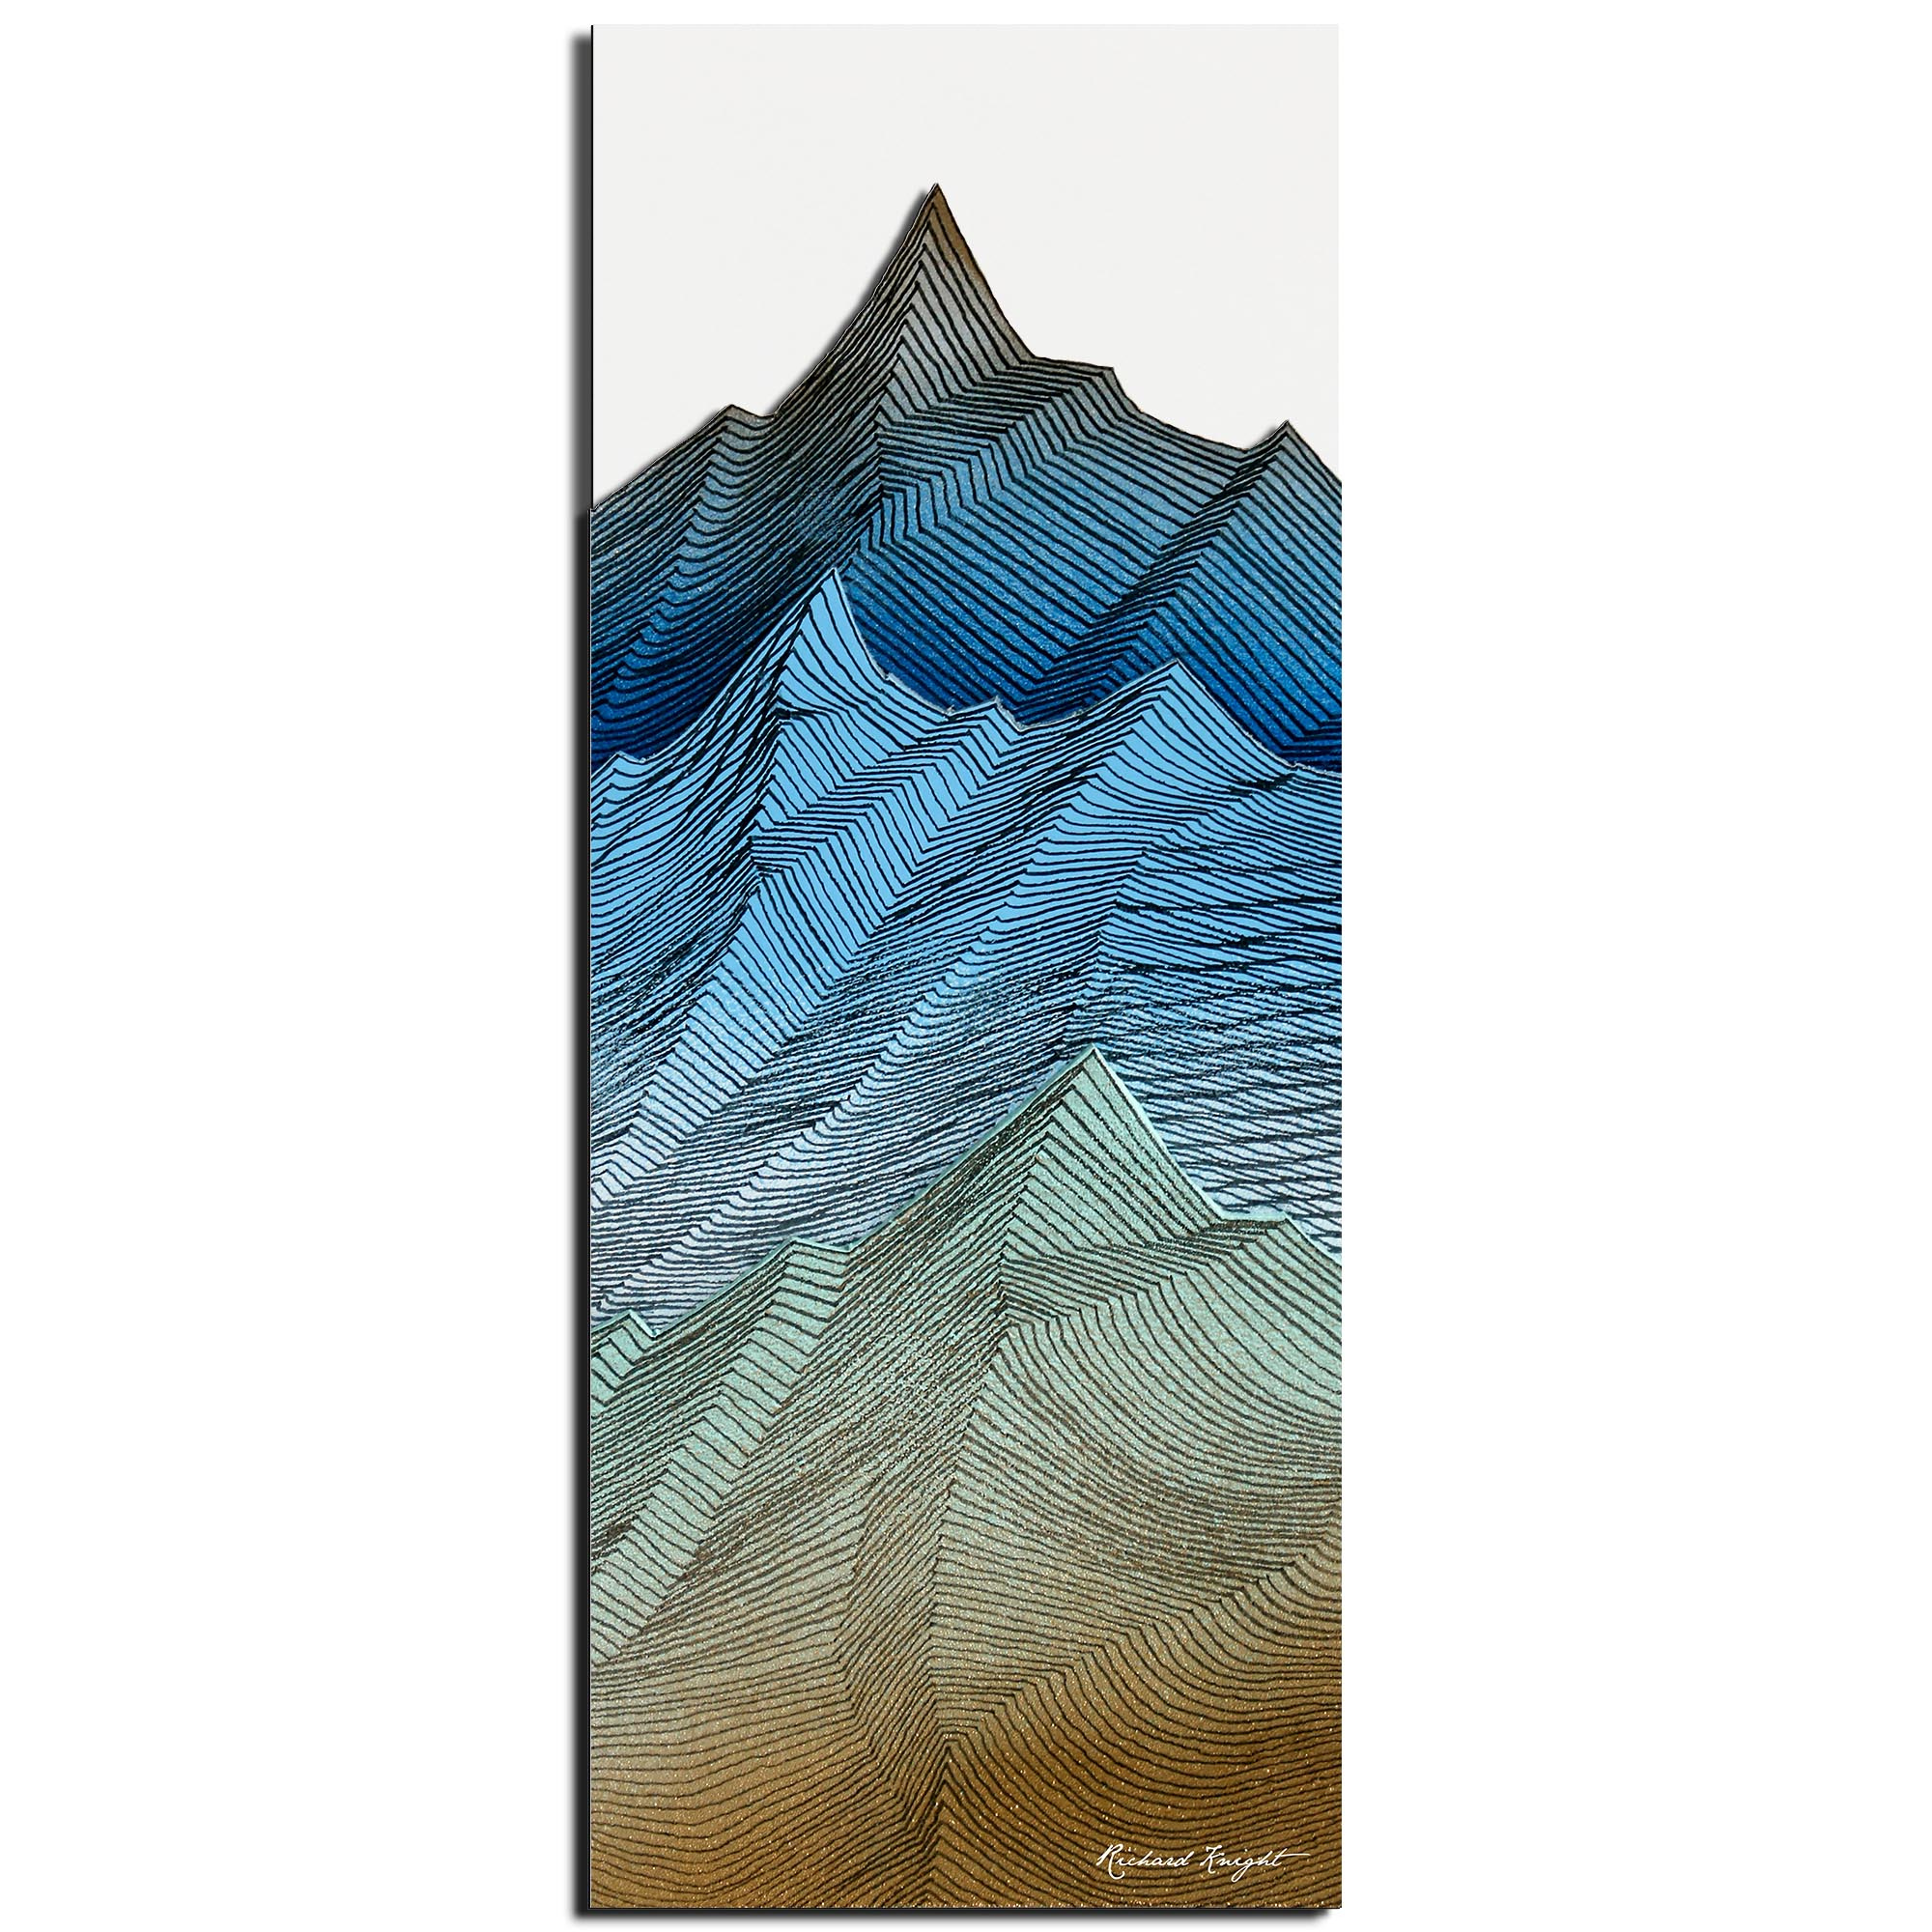 Richard Knight 'Organic Peaks' 19in x 48in Abstract Landscape Art on Polymetal